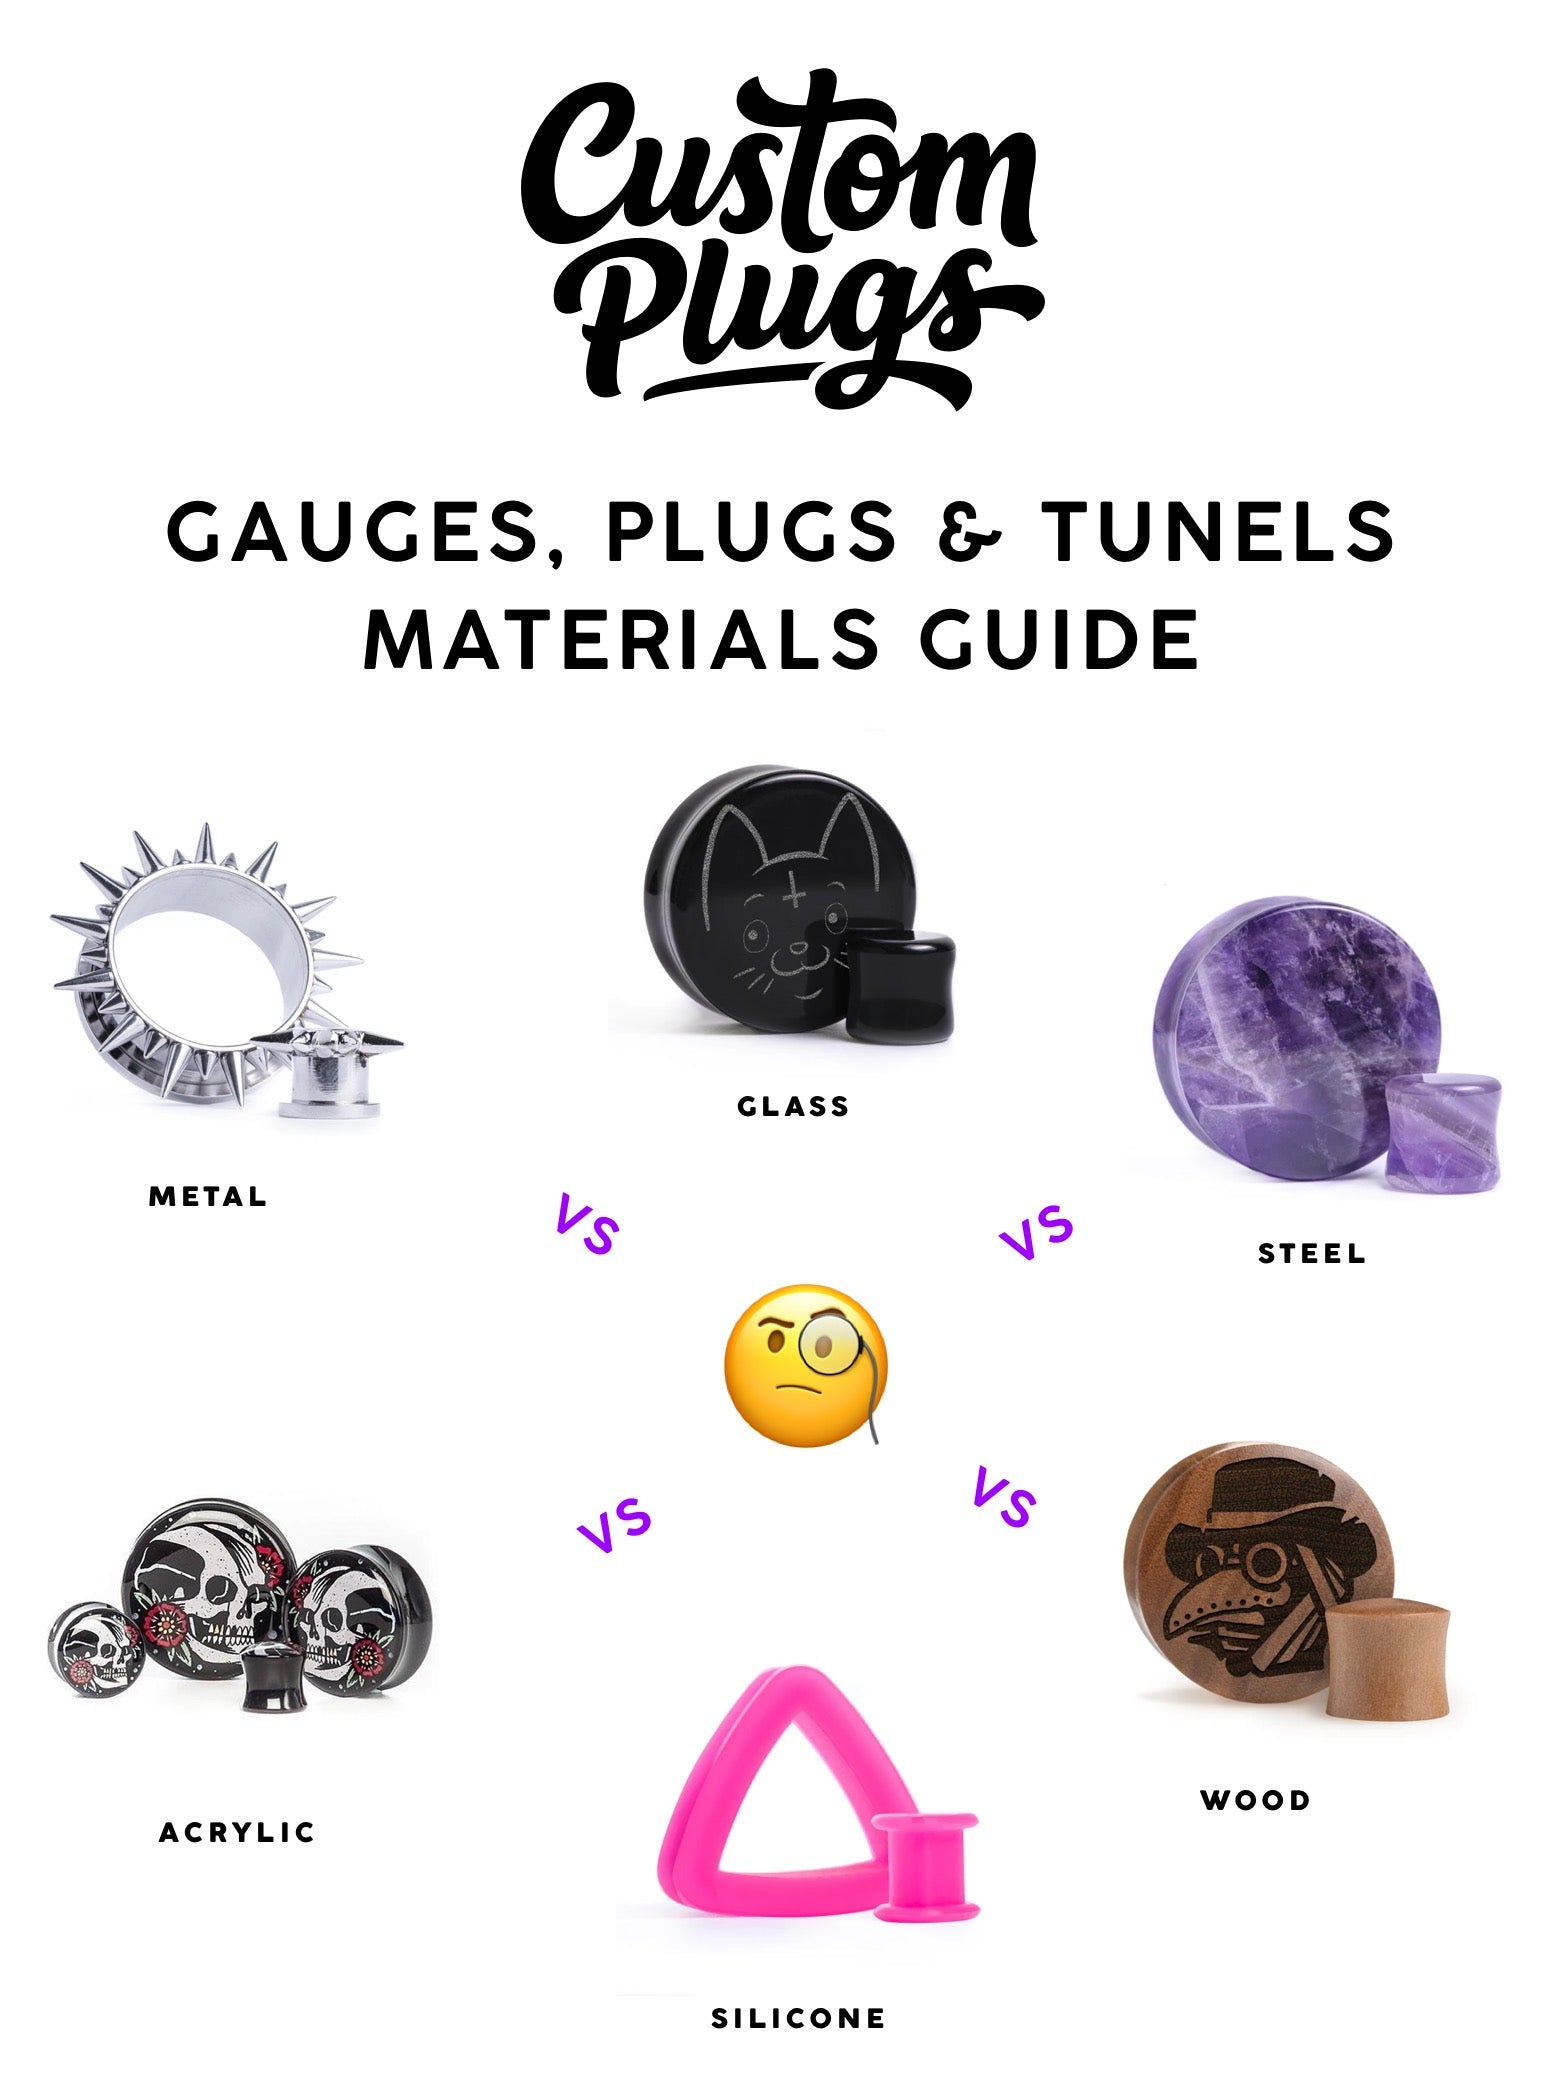 complete guide to best materials for plugs, gauges and tunnels